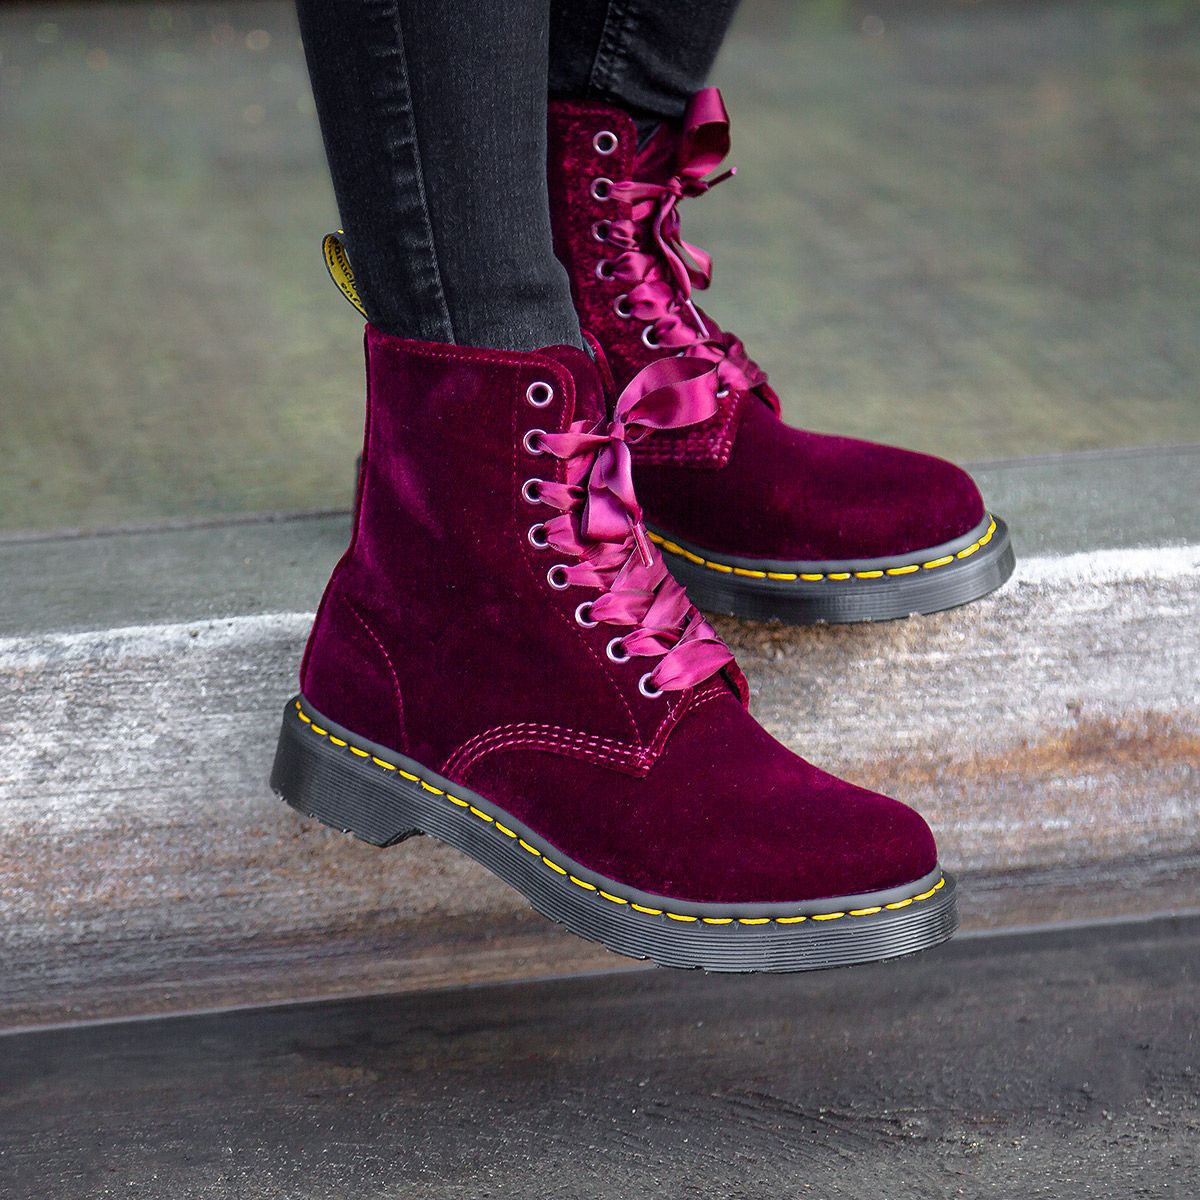 Cherry Red Velvet Dr. Martens Boots (With images) | Red